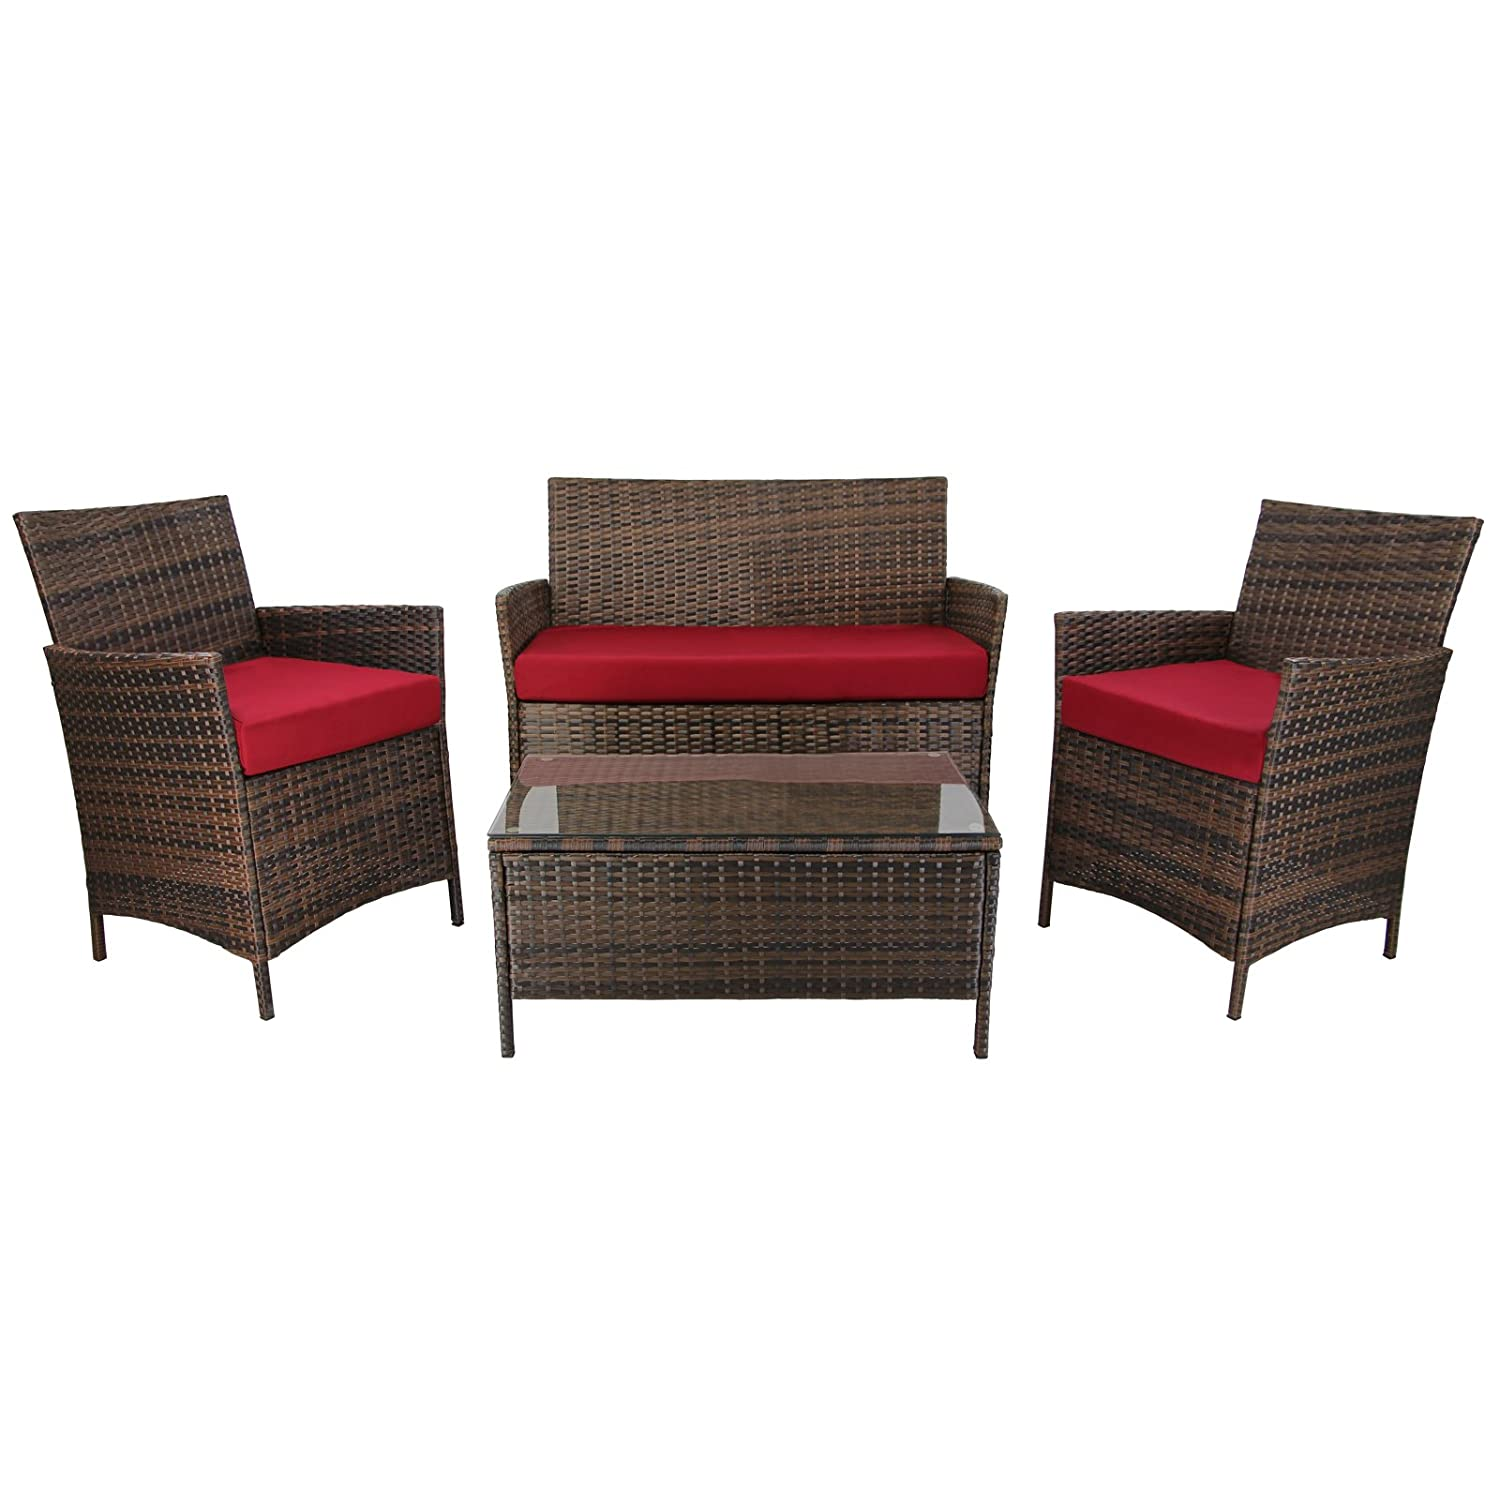 7 teilige rattan sitzgruppe lounge kuba lounge set poly. Black Bedroom Furniture Sets. Home Design Ideas